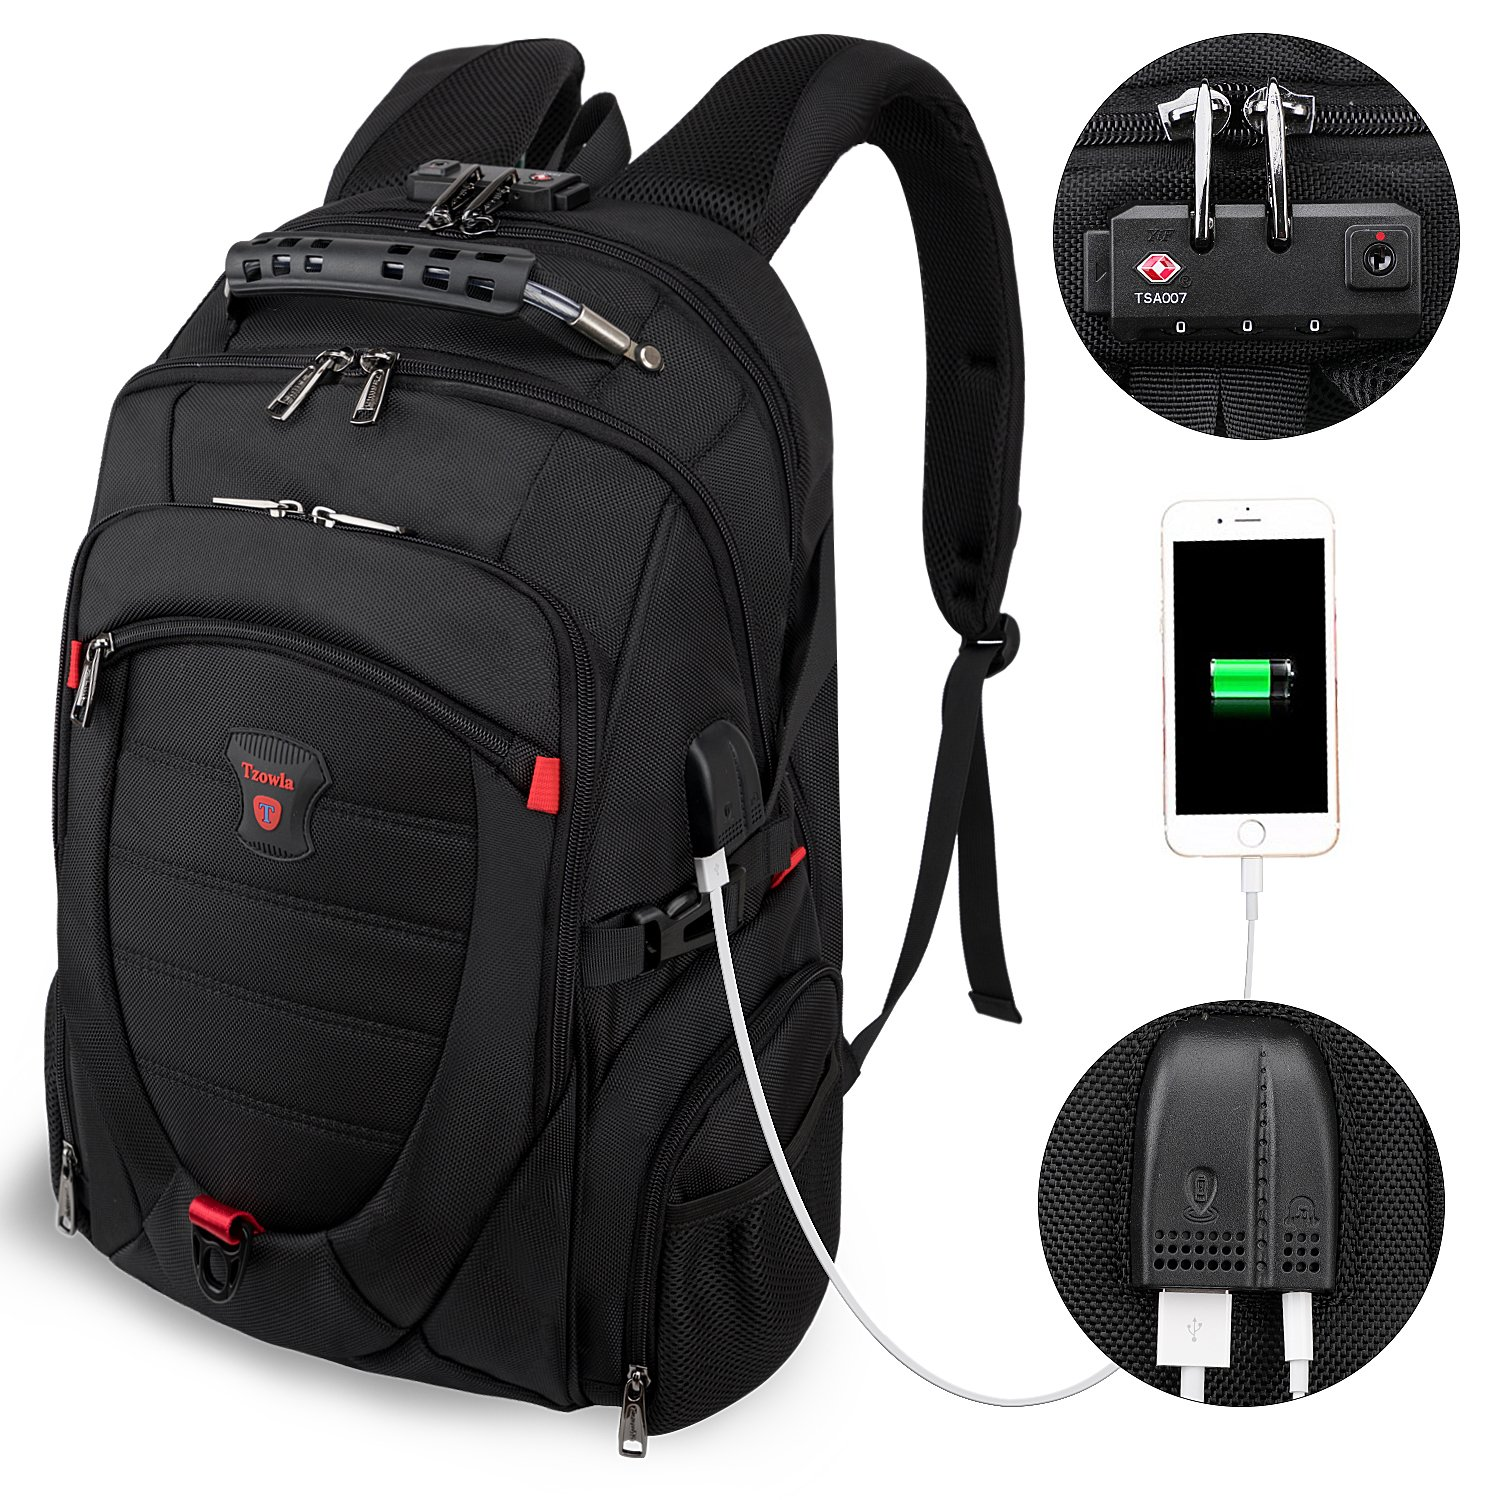 34e08b4127f2 Laptop Travel Backpack Amazon- Fenix Toulouse Handball